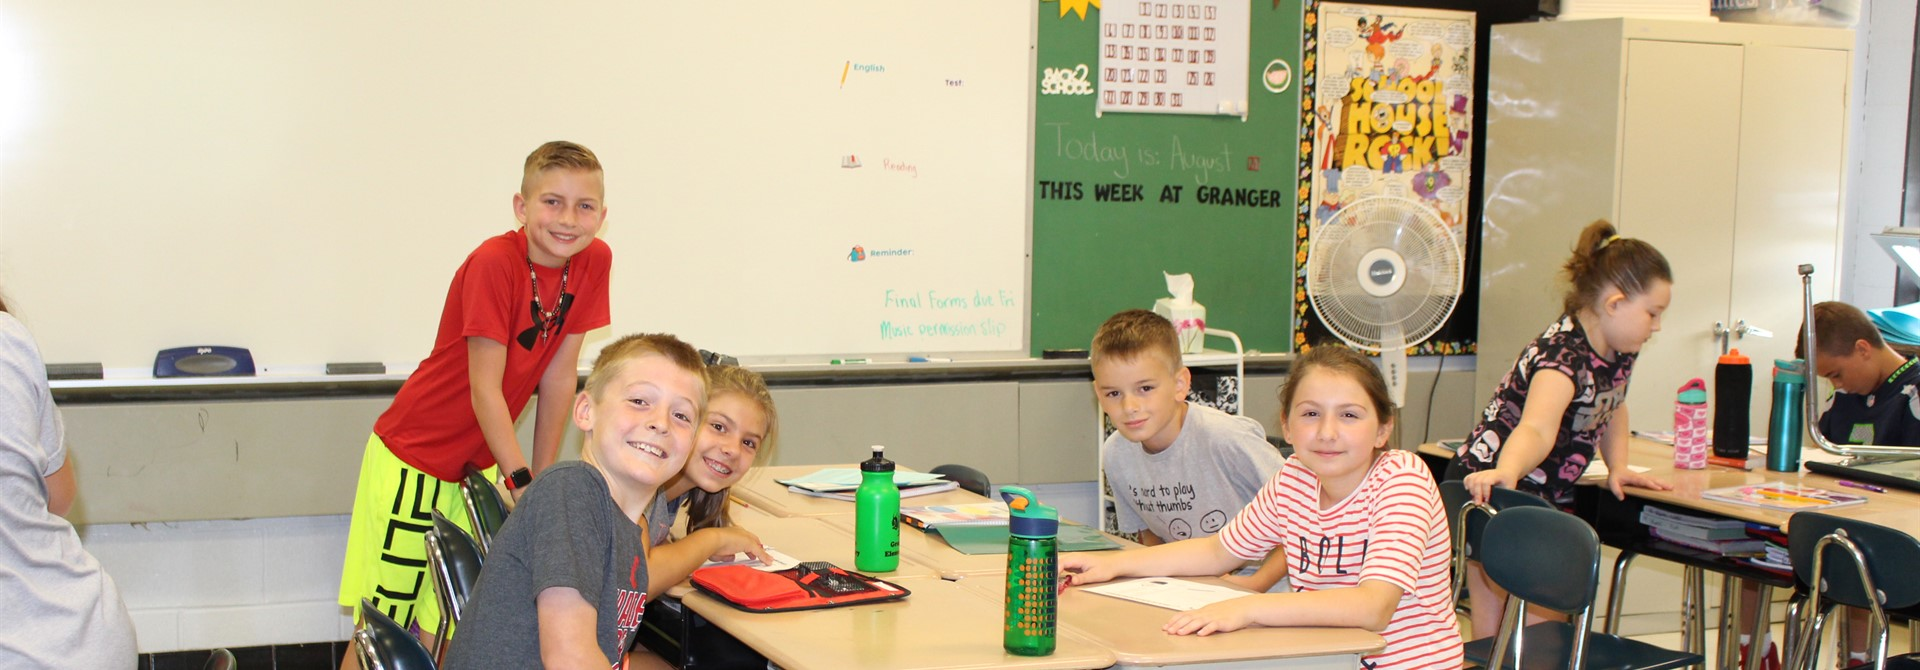 Granger Students in the Classroom